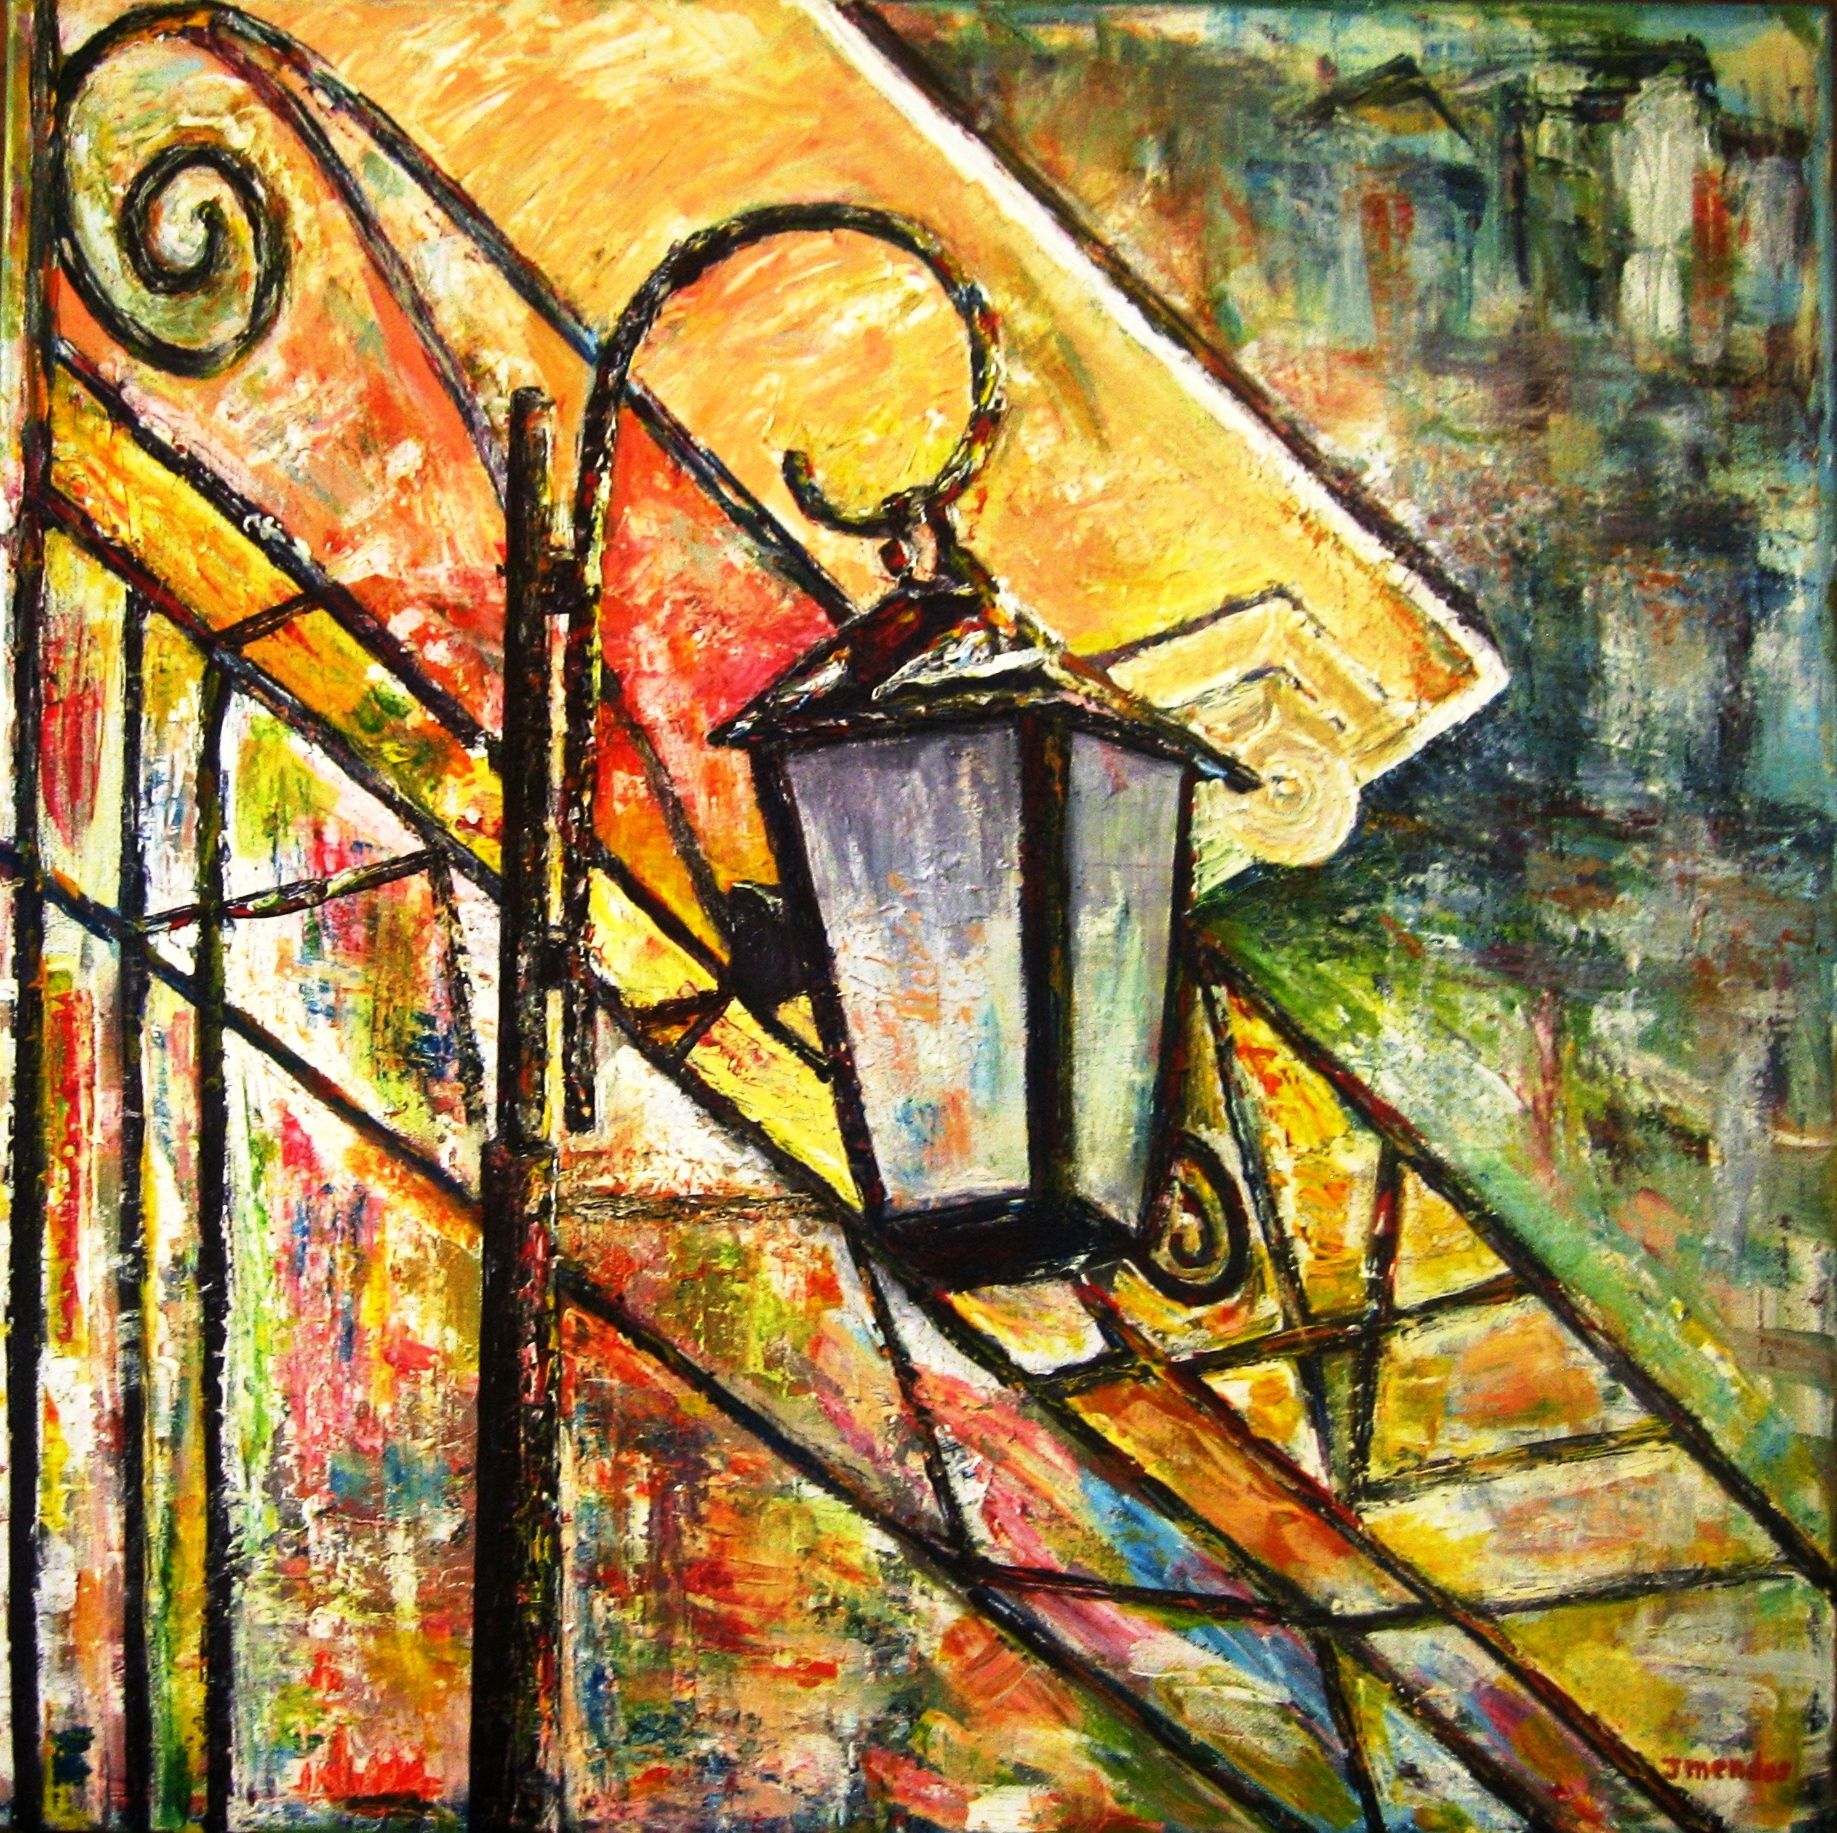 Jorge Mendes Artwork Colorful Street Lamp Original